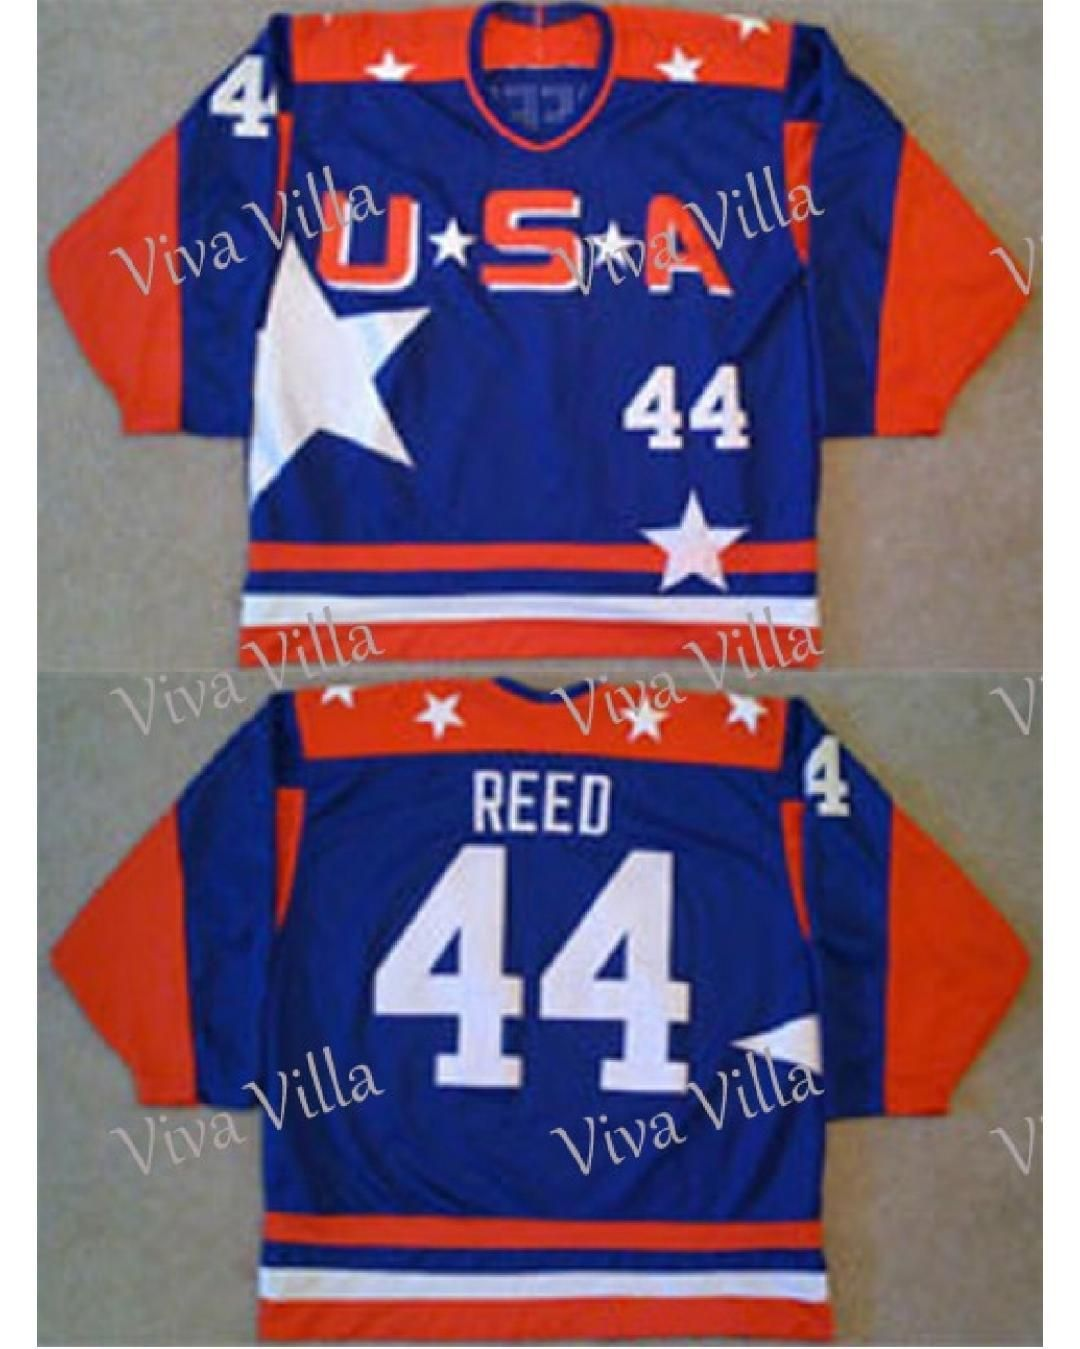 44 Fulton Reed Jersey Mighty Ducks Jersey 21 Dean Portman Stitched Men's Movie Hockey Jerseys S-3XL Free Shipping  47.99 and FREE Shipping  Tag a friend who would love this!  Active link in BIO  #computers #electronics #home #garden #LED #mobiles #fashion #jewellery #toys #bargain #coolstuff #headphones #auto #gifts #healthcare #office #fun #gadge